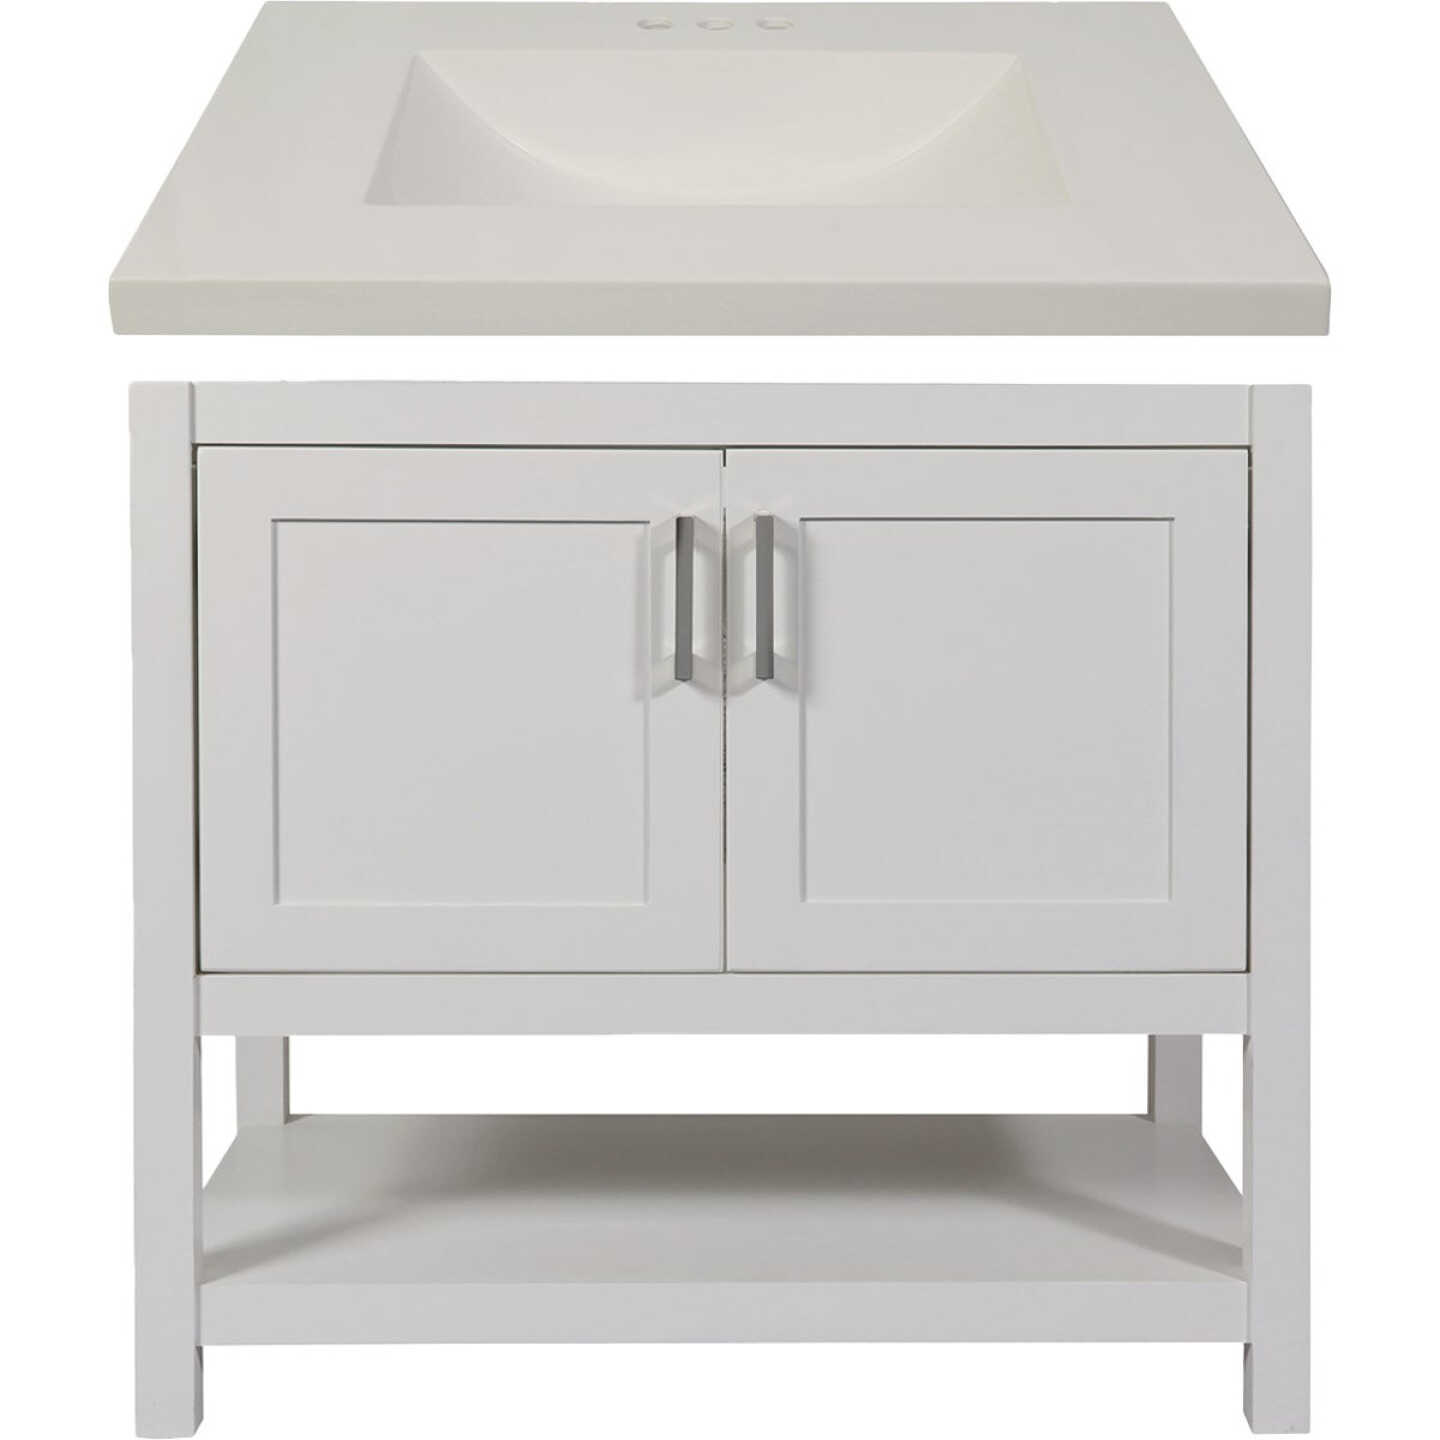 Modular Monaco White 36 In. W x 34-1/2 In. H x 21 In. D Vanity with White Cultured Marble Top Image 1